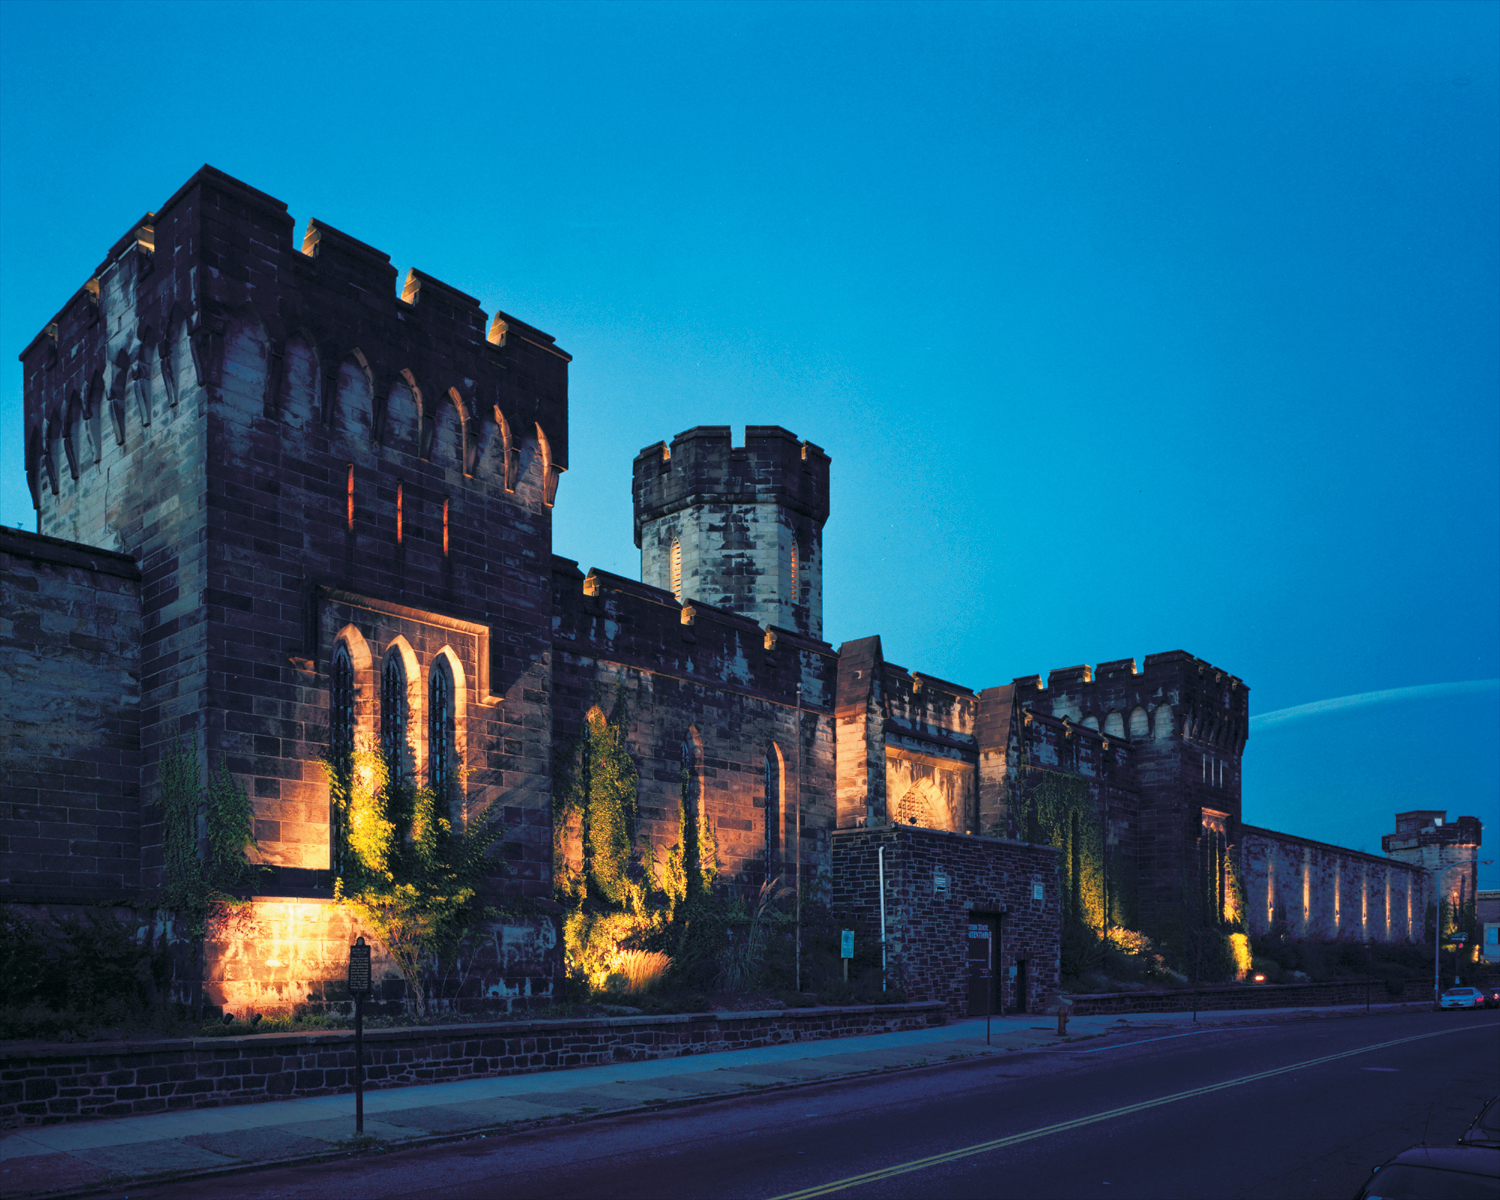 Photo: http://www.easternstate.org/